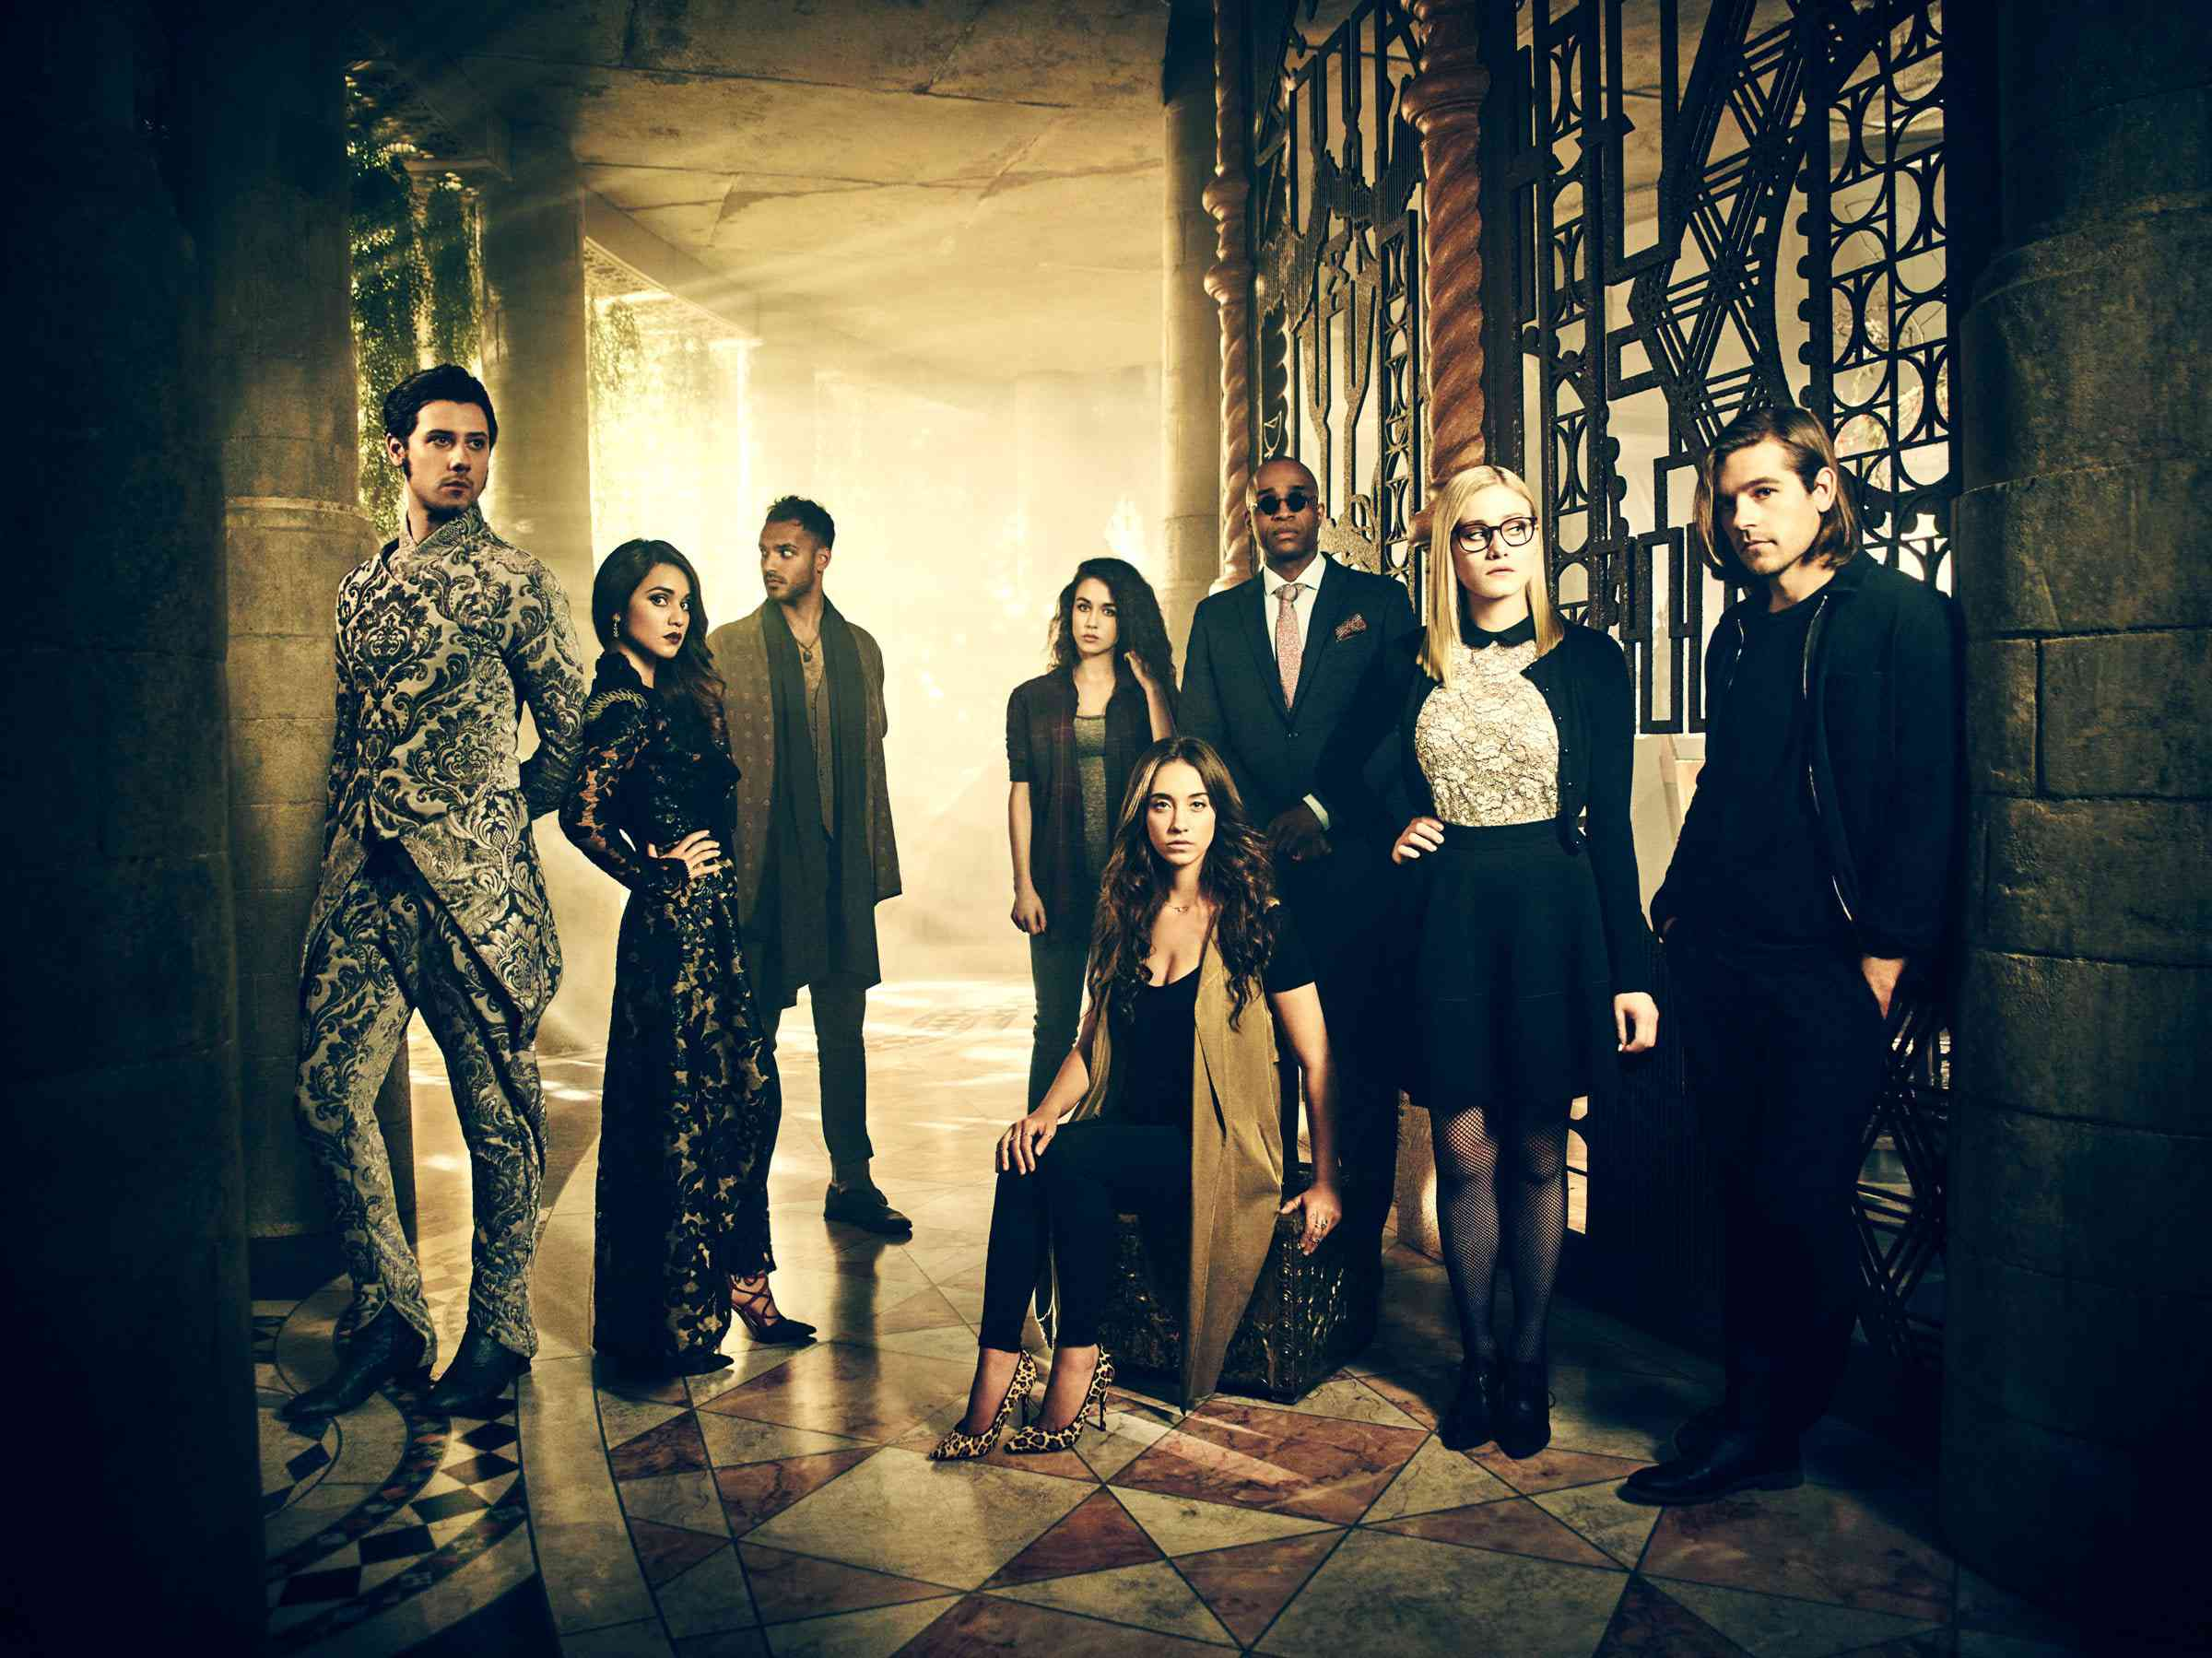 The cast of the TV show 'The Magicians.'